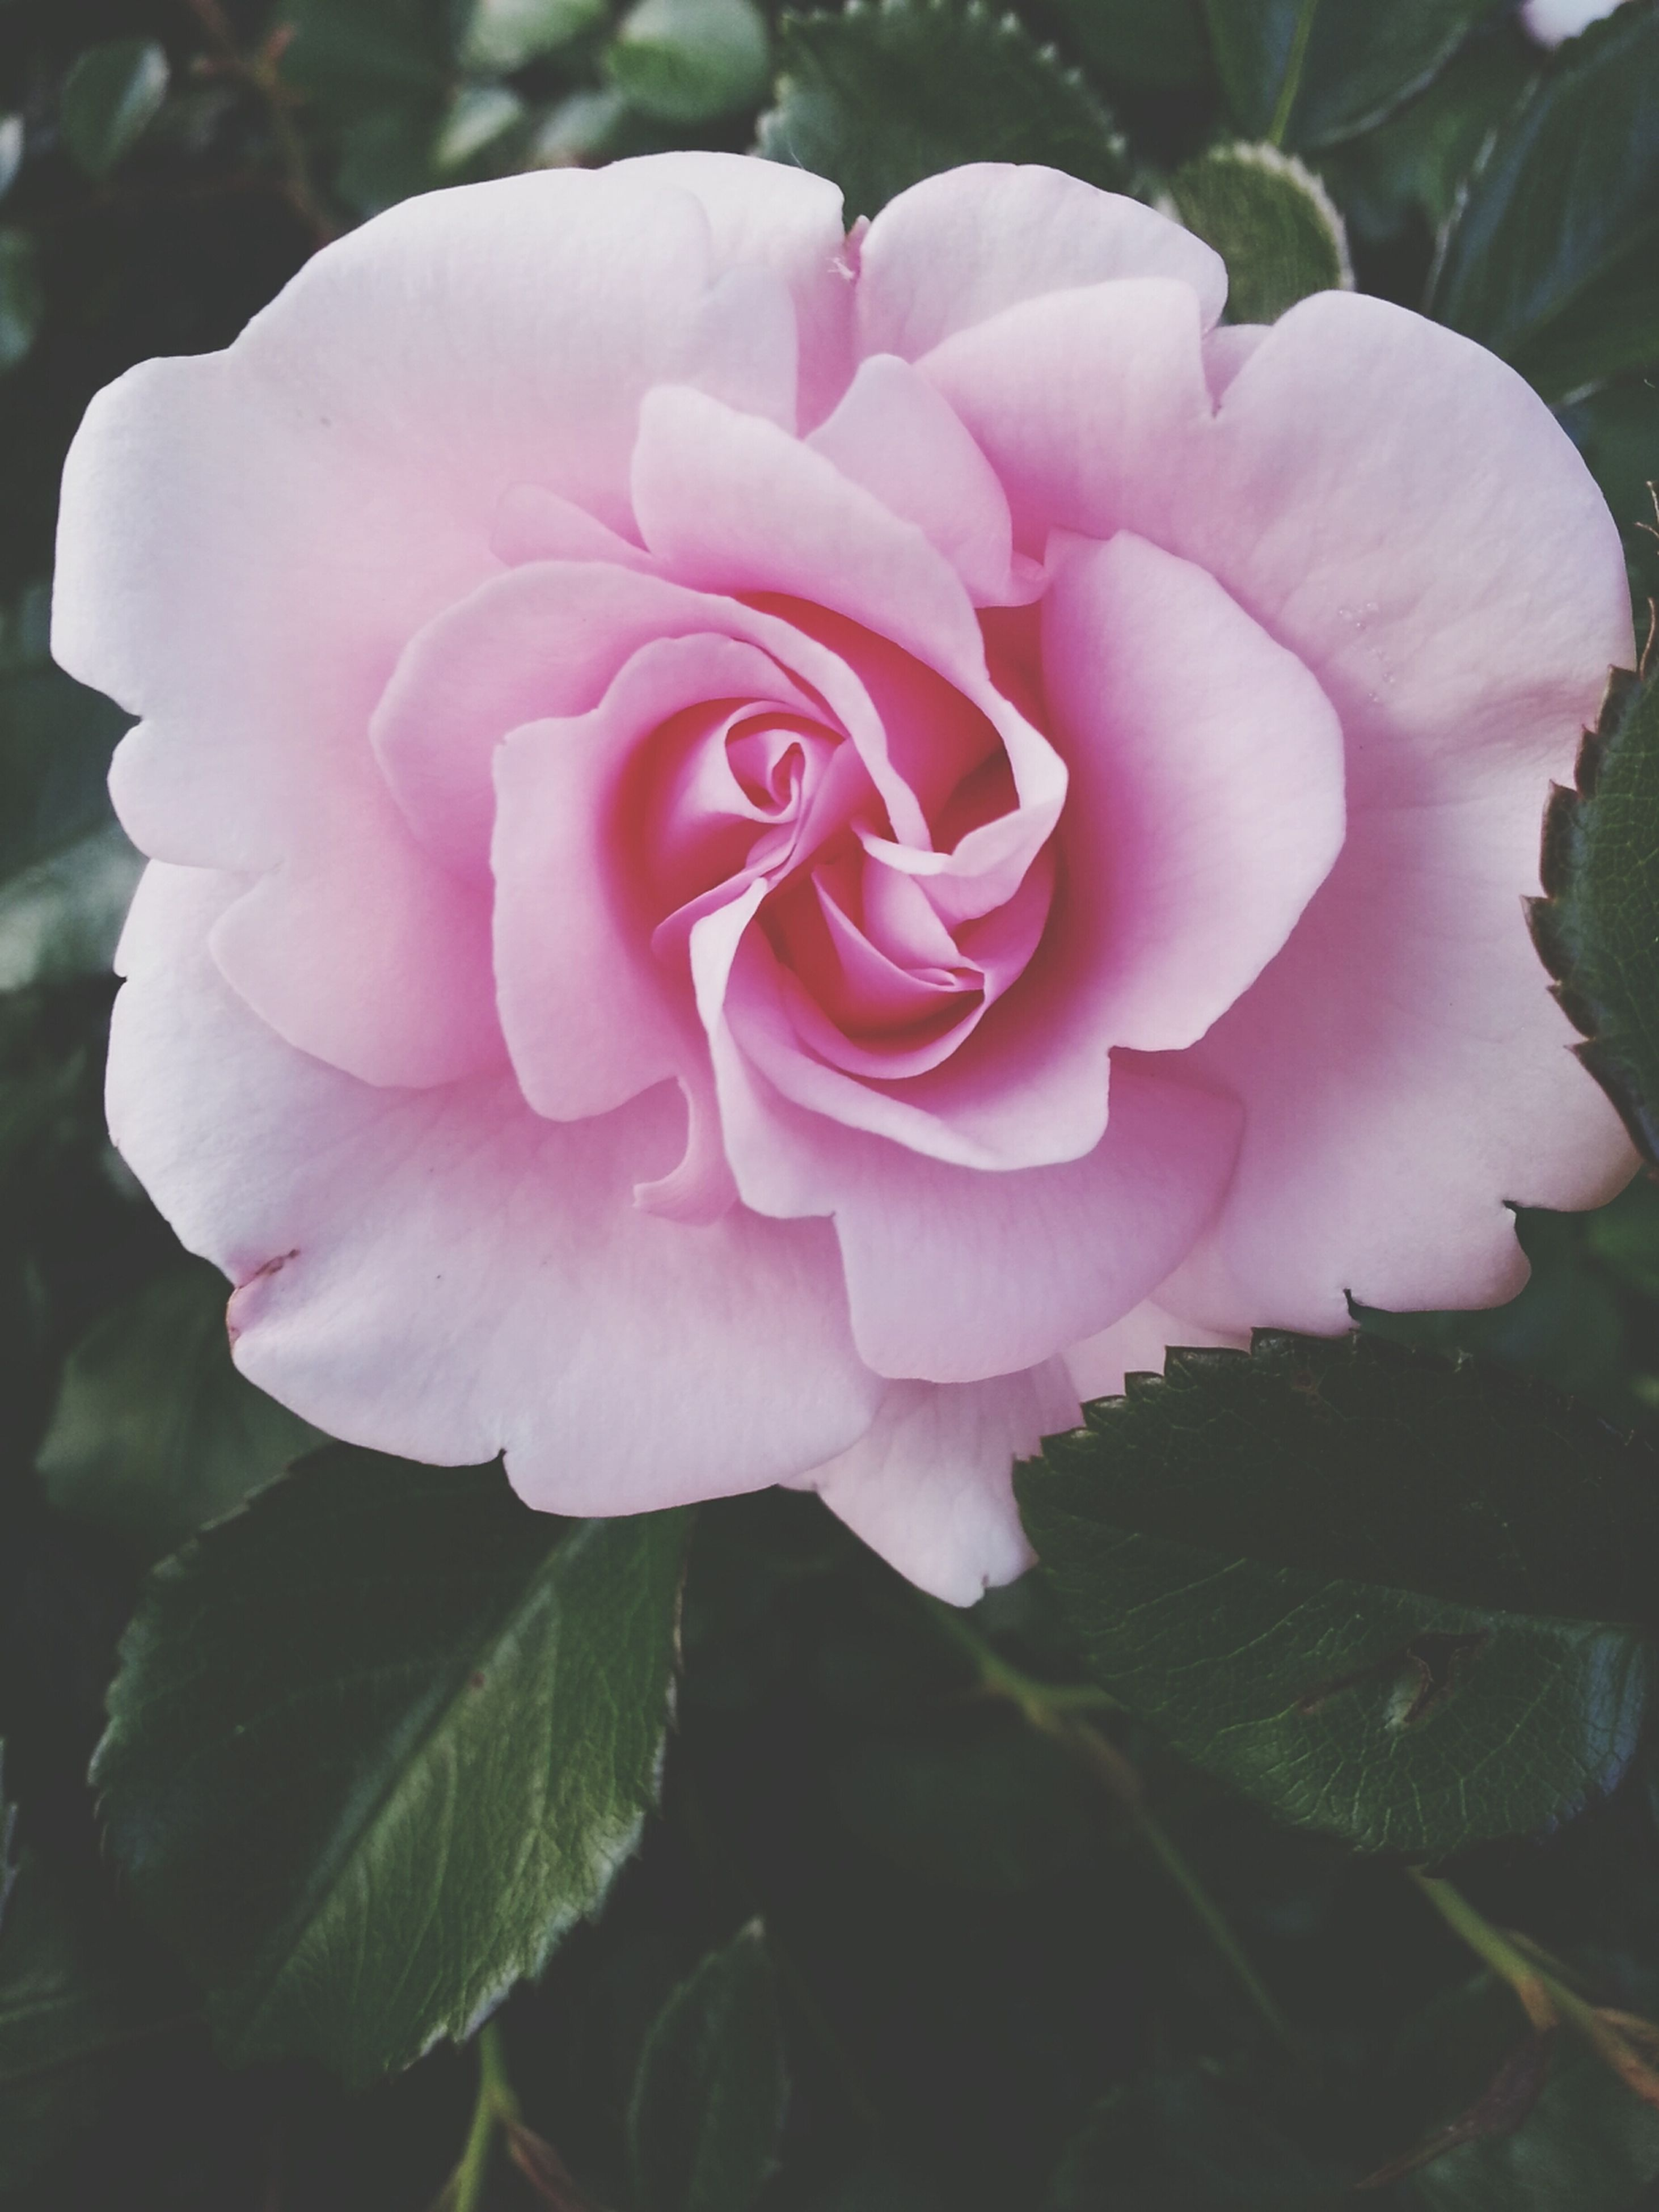 flower, petal, freshness, fragility, flower head, growth, pink color, beauty in nature, close-up, rose - flower, single flower, nature, blooming, plant, in bloom, focus on foreground, leaf, pink, blossom, day